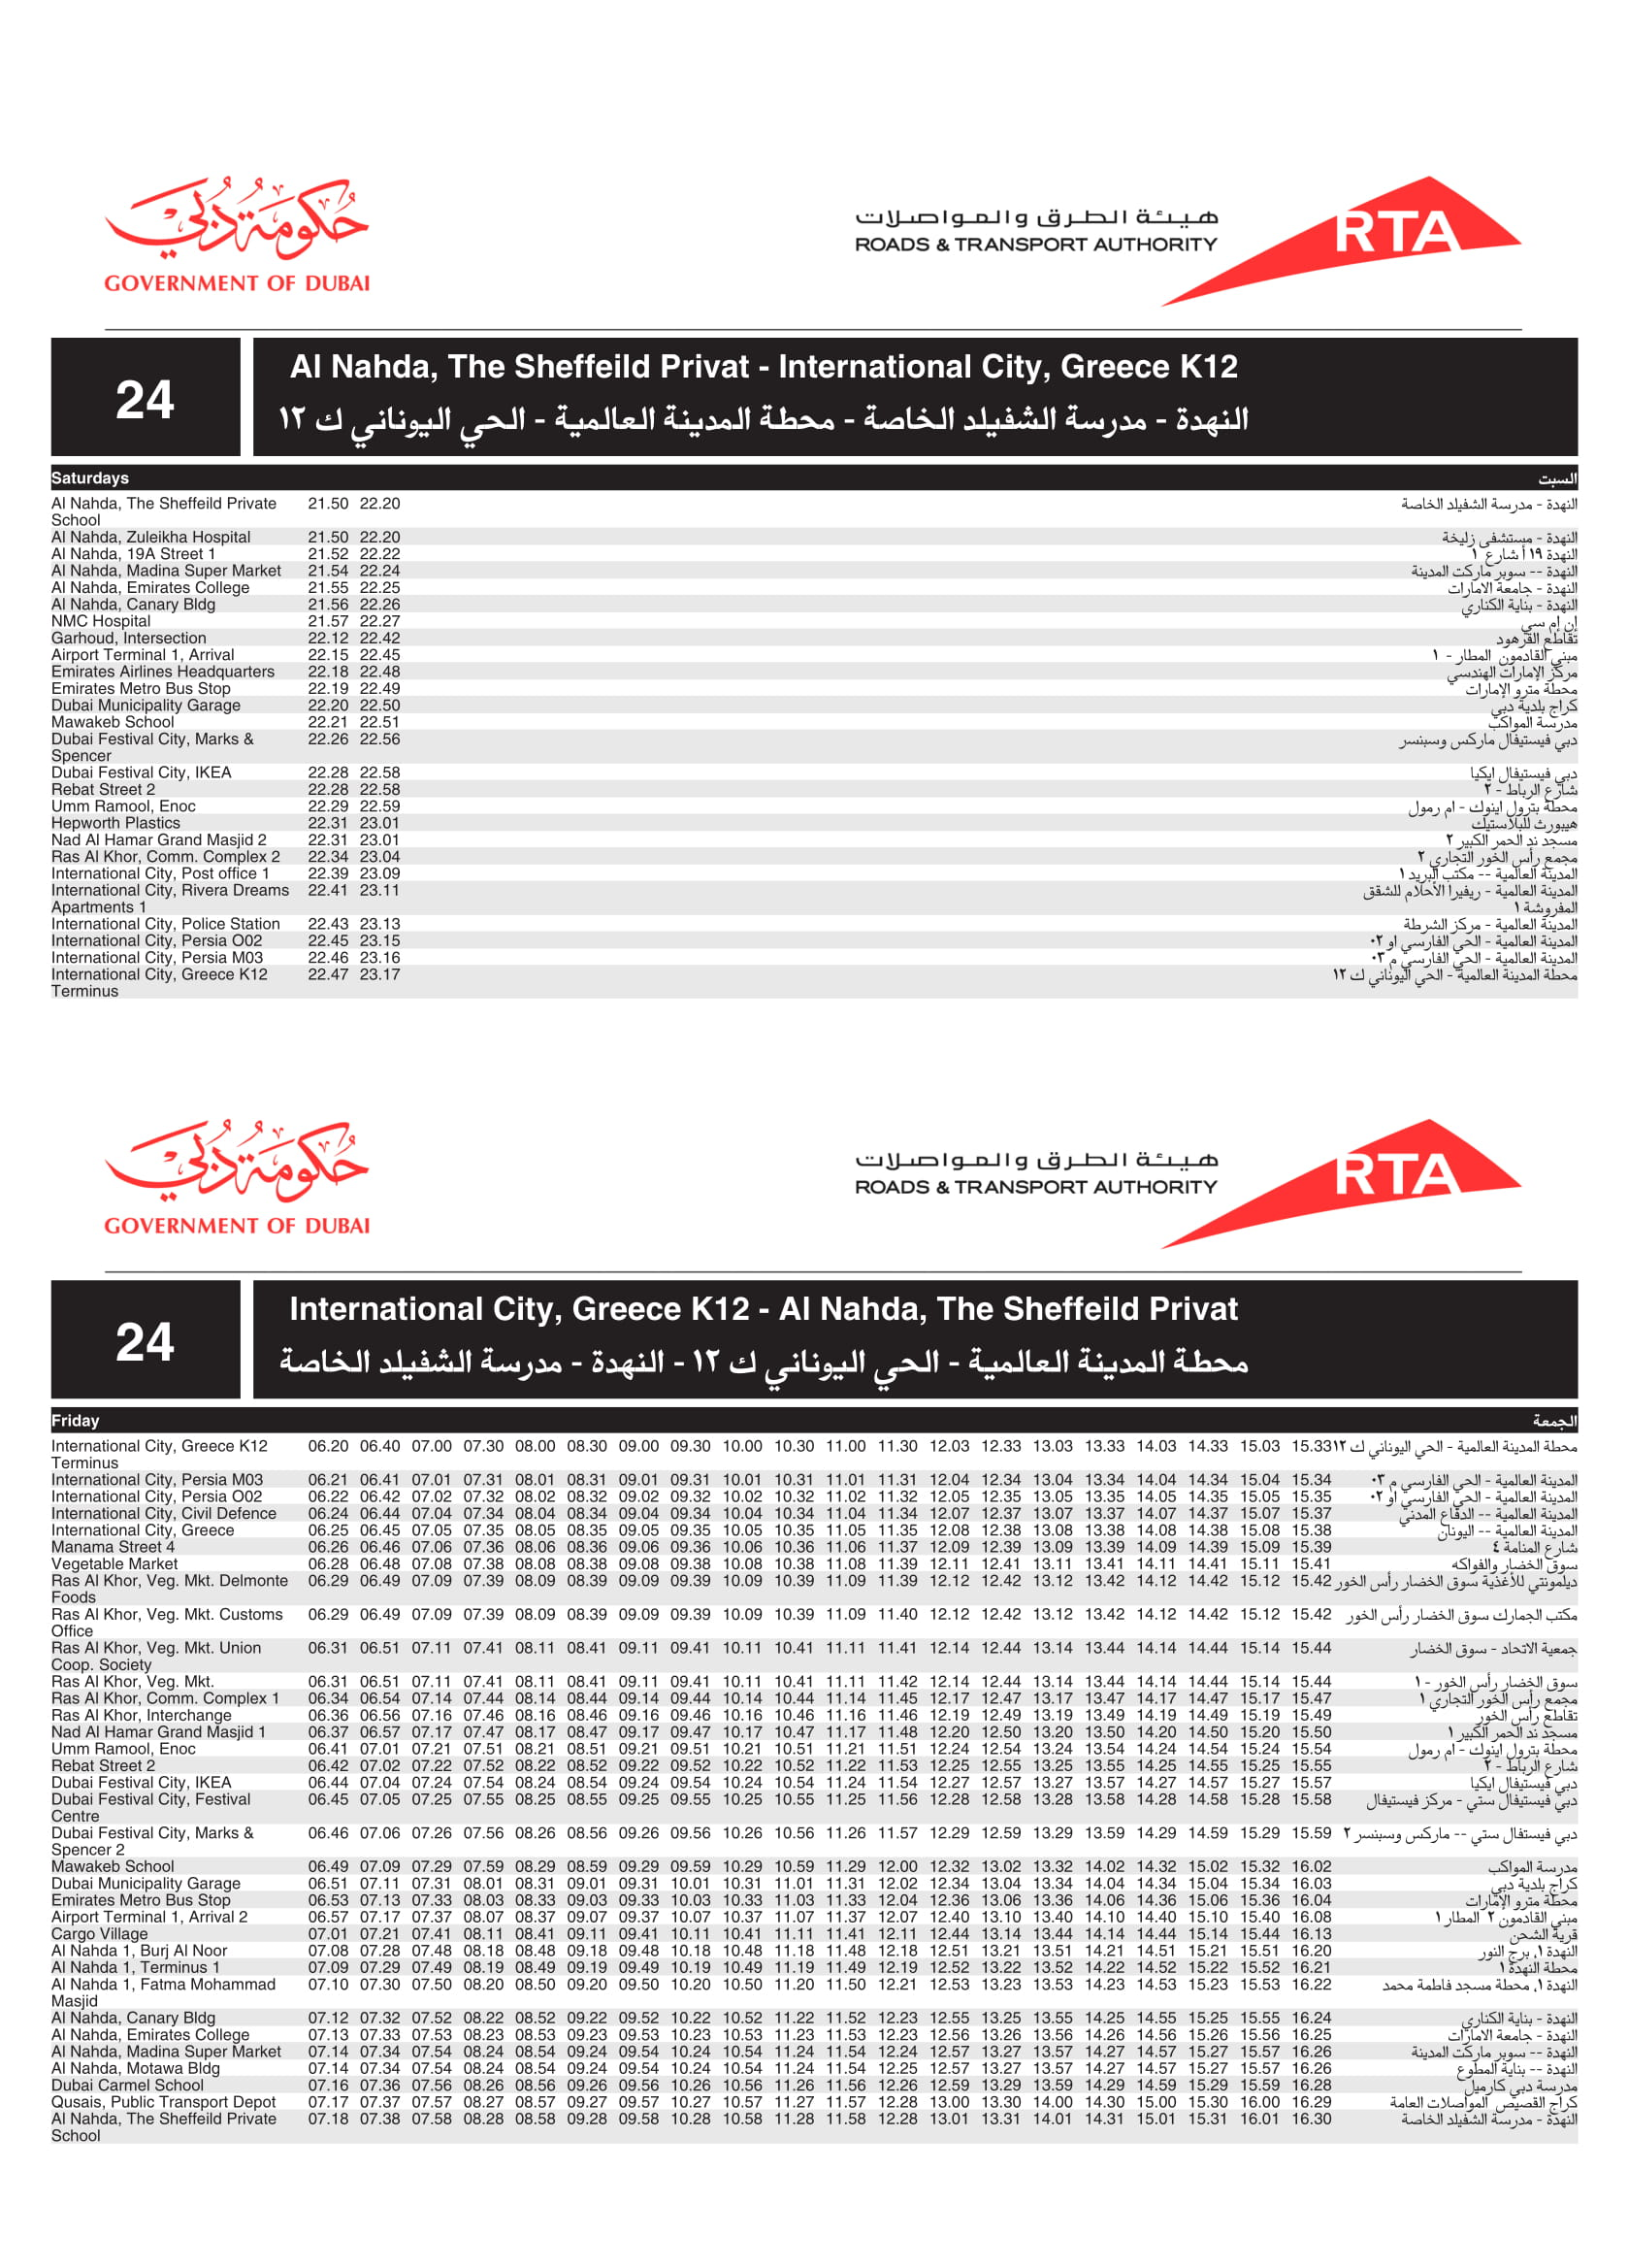 24 Bus Route In Dubai Time Schedule Stops And Maps